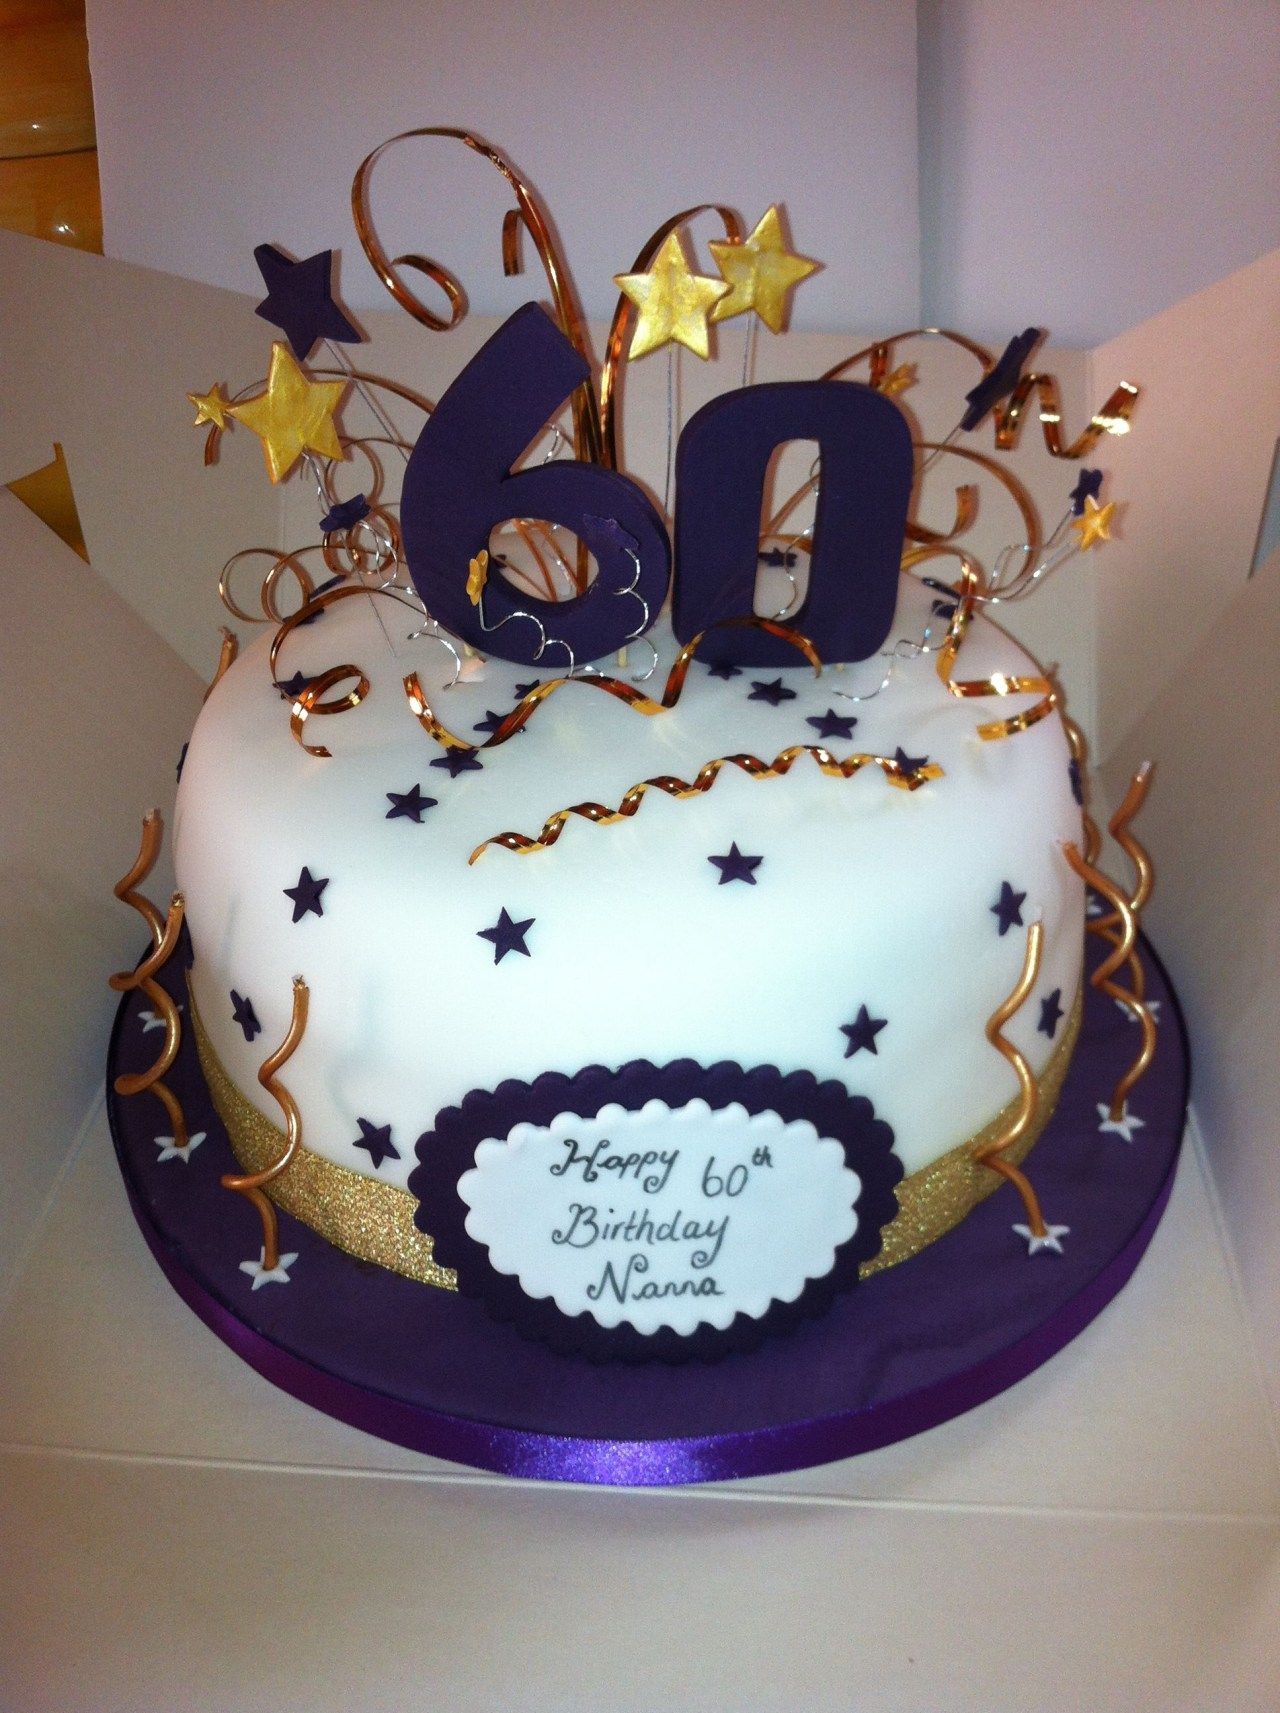 20 Brilliant Image Of 60th Birthday Cakes 60th Birthday Cakes